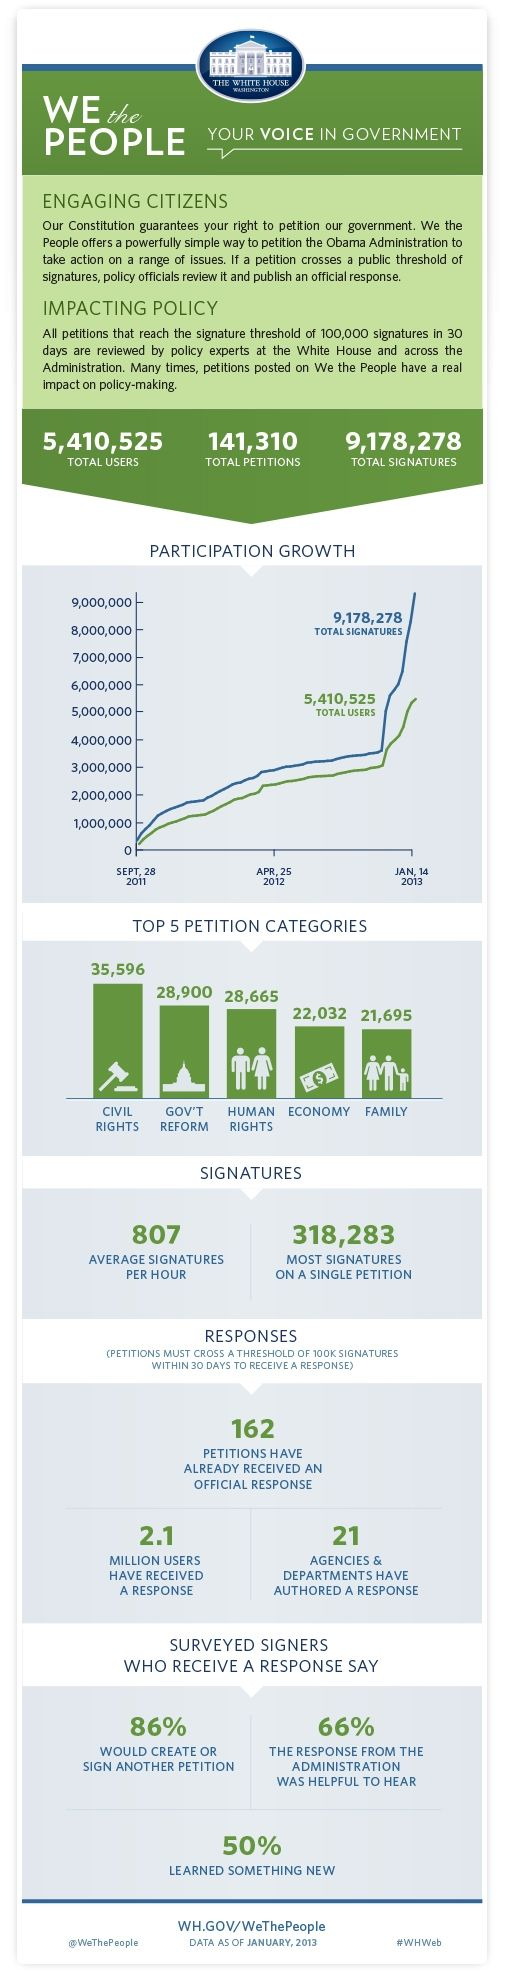 Interesting stats on We the People, threshold increased to 100,000 signatures within first 30 days to receive a response.